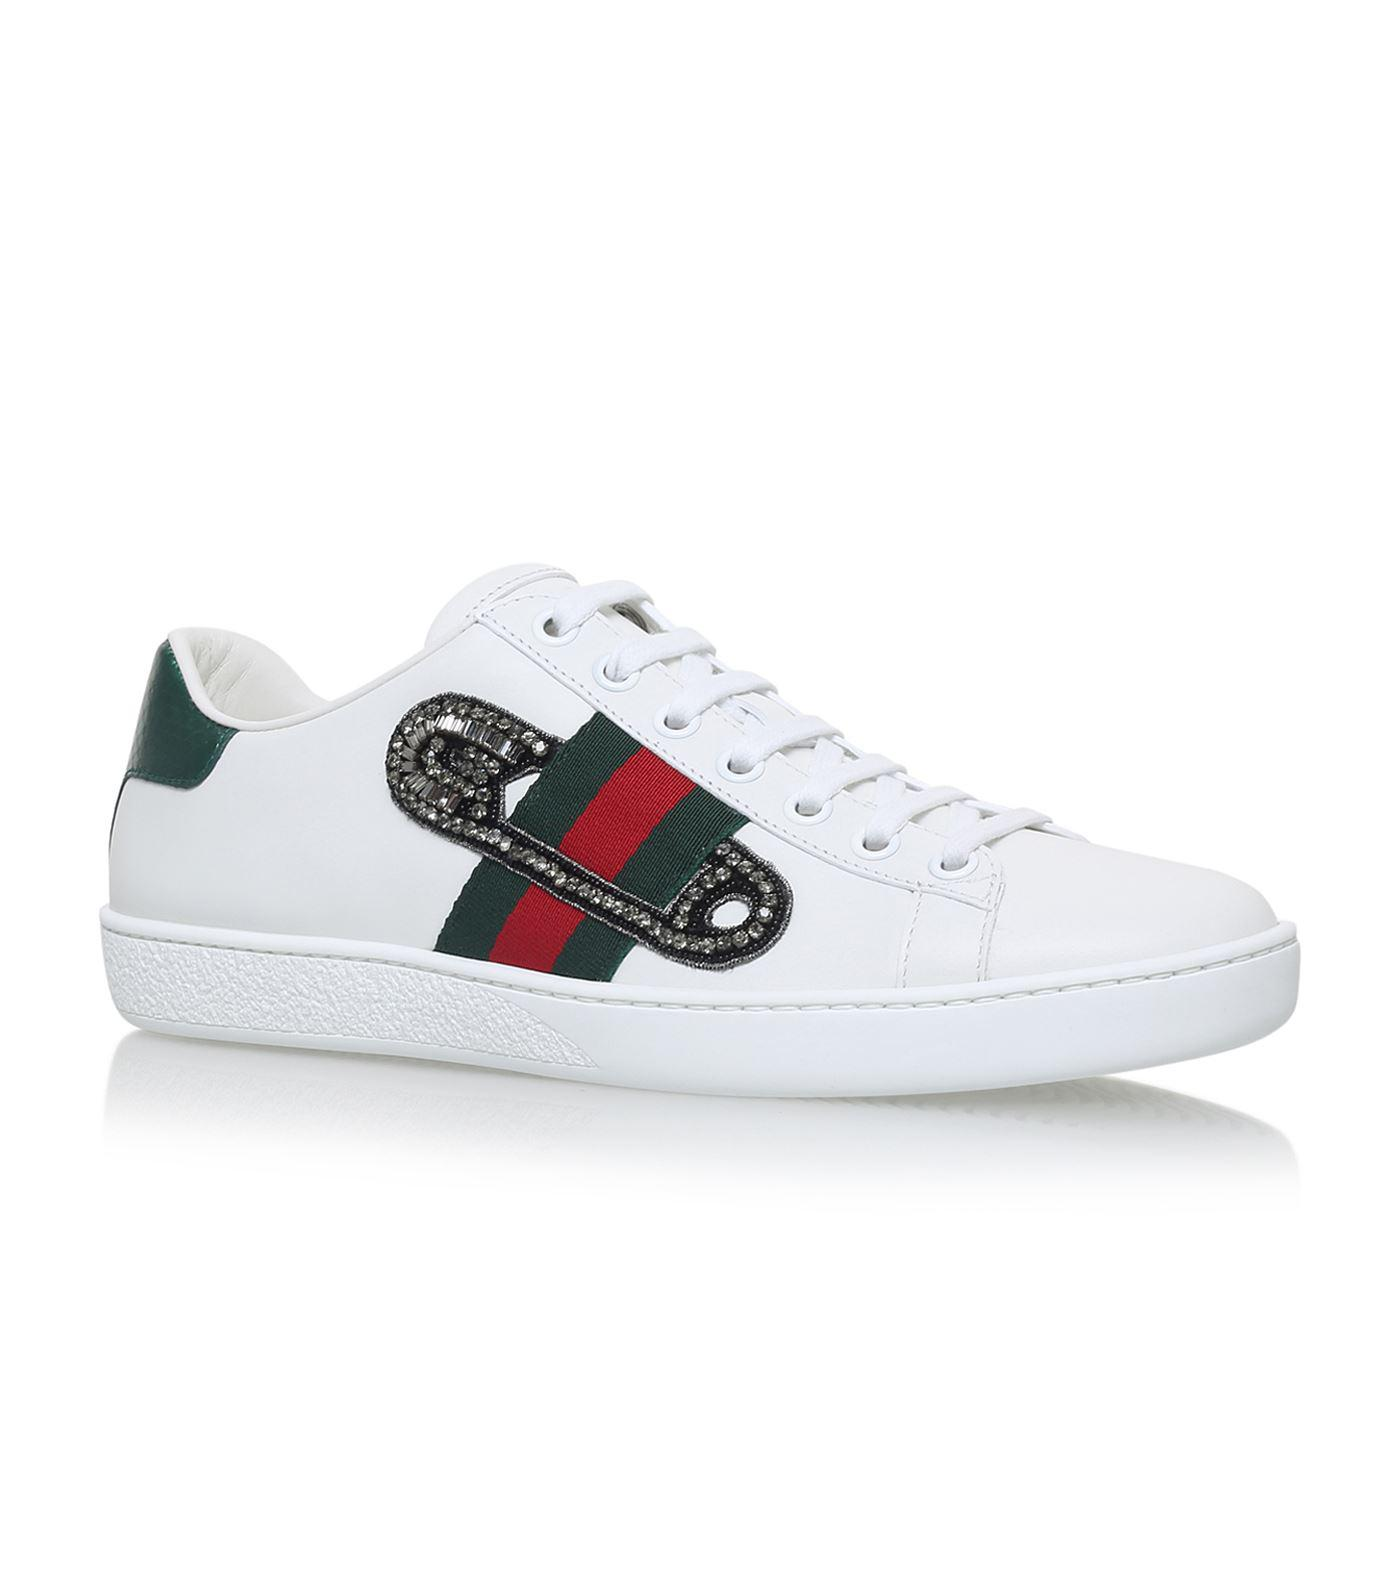 419510b7afc4 Lyst - Gucci Pin New Ace Sneakers in White for Men